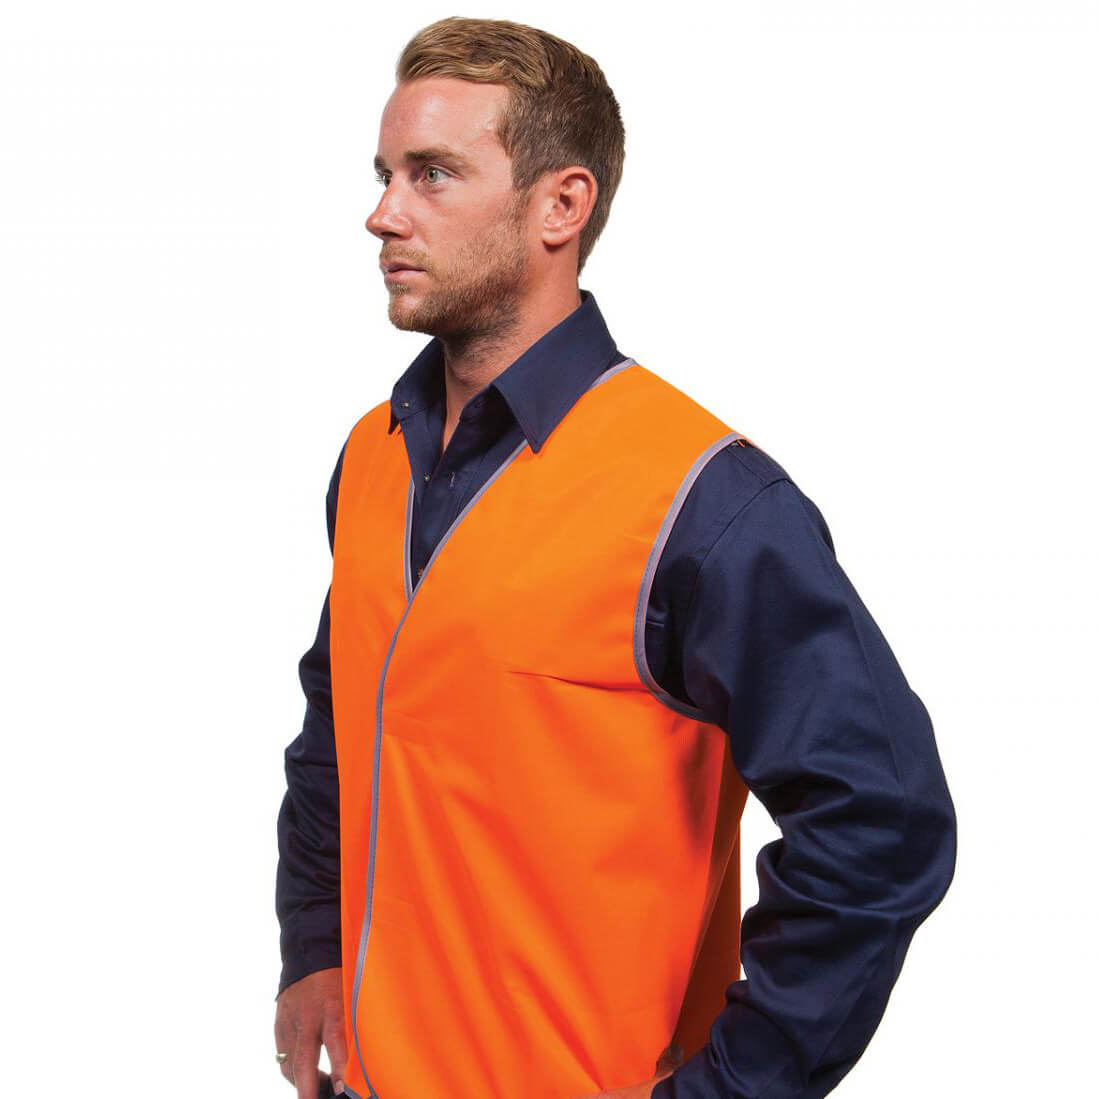 Force360 Hi Vis Safety Vest Orange